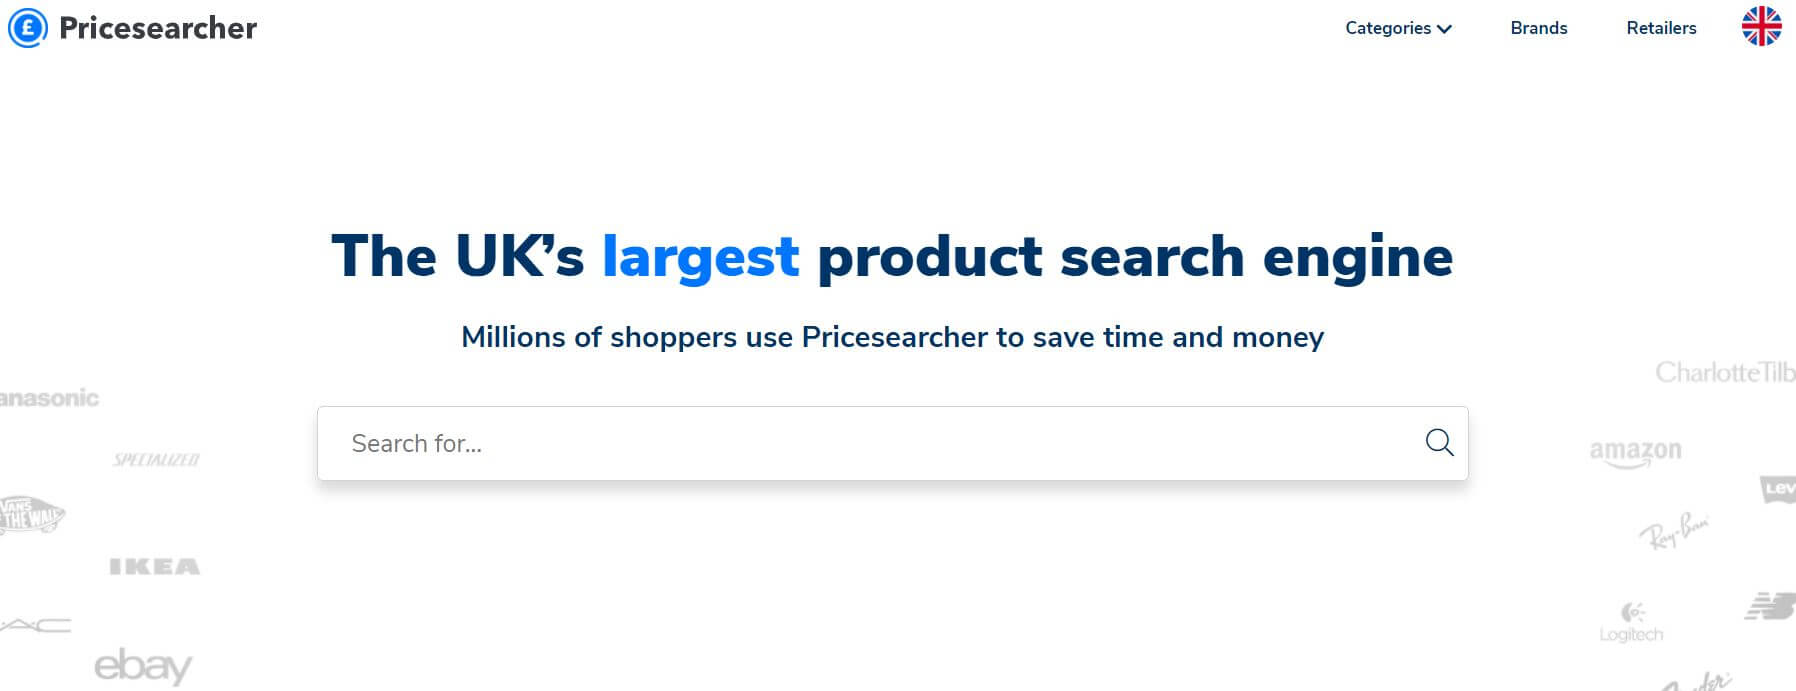 pricesearcher UK